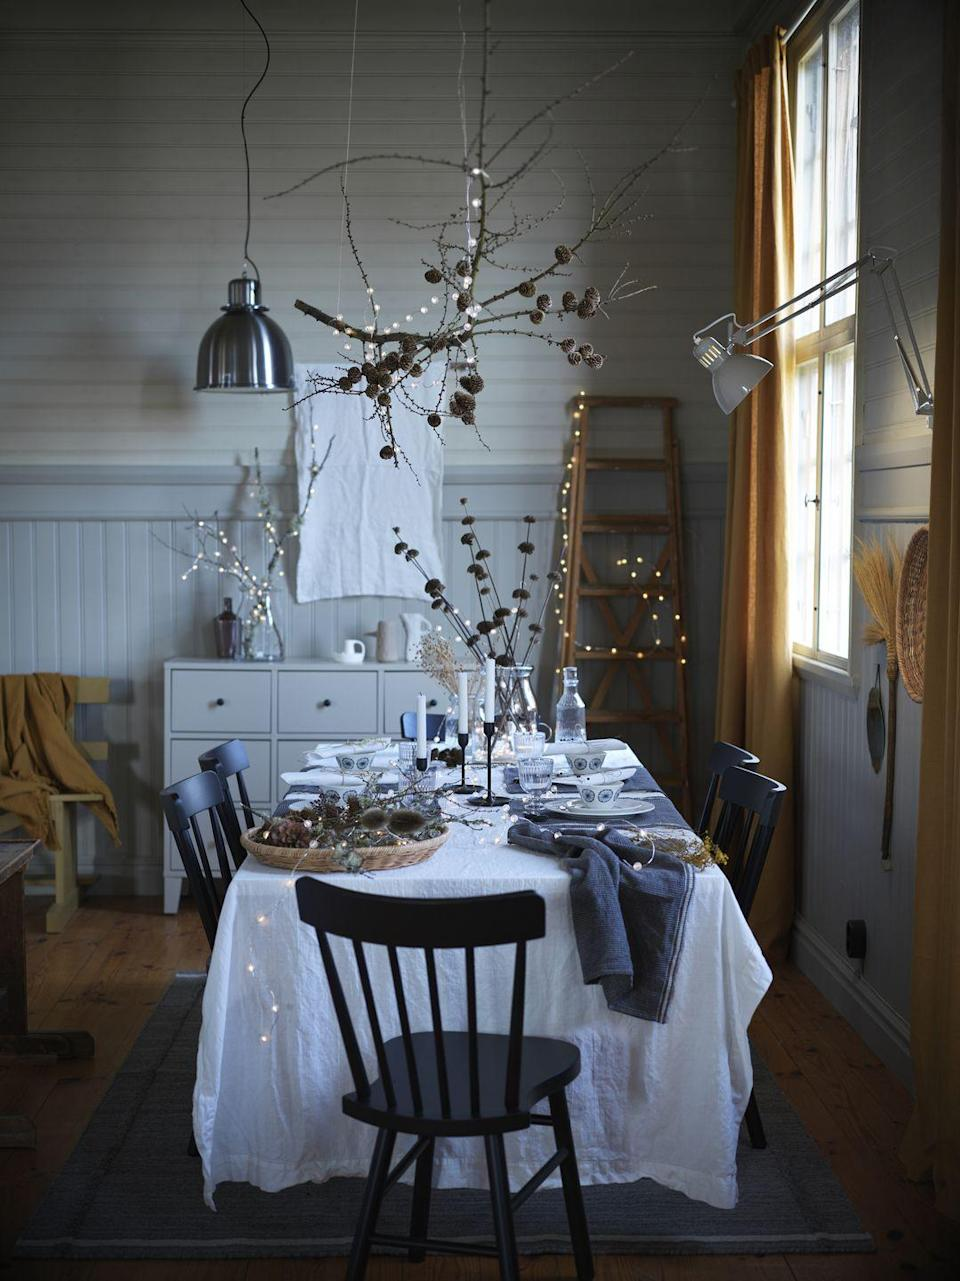 <p>Shop the Mys and Festivities collection and you'll find gorgeous candlesticks, serving bowls, and an extendable table perfect for festive entertaining. </p>